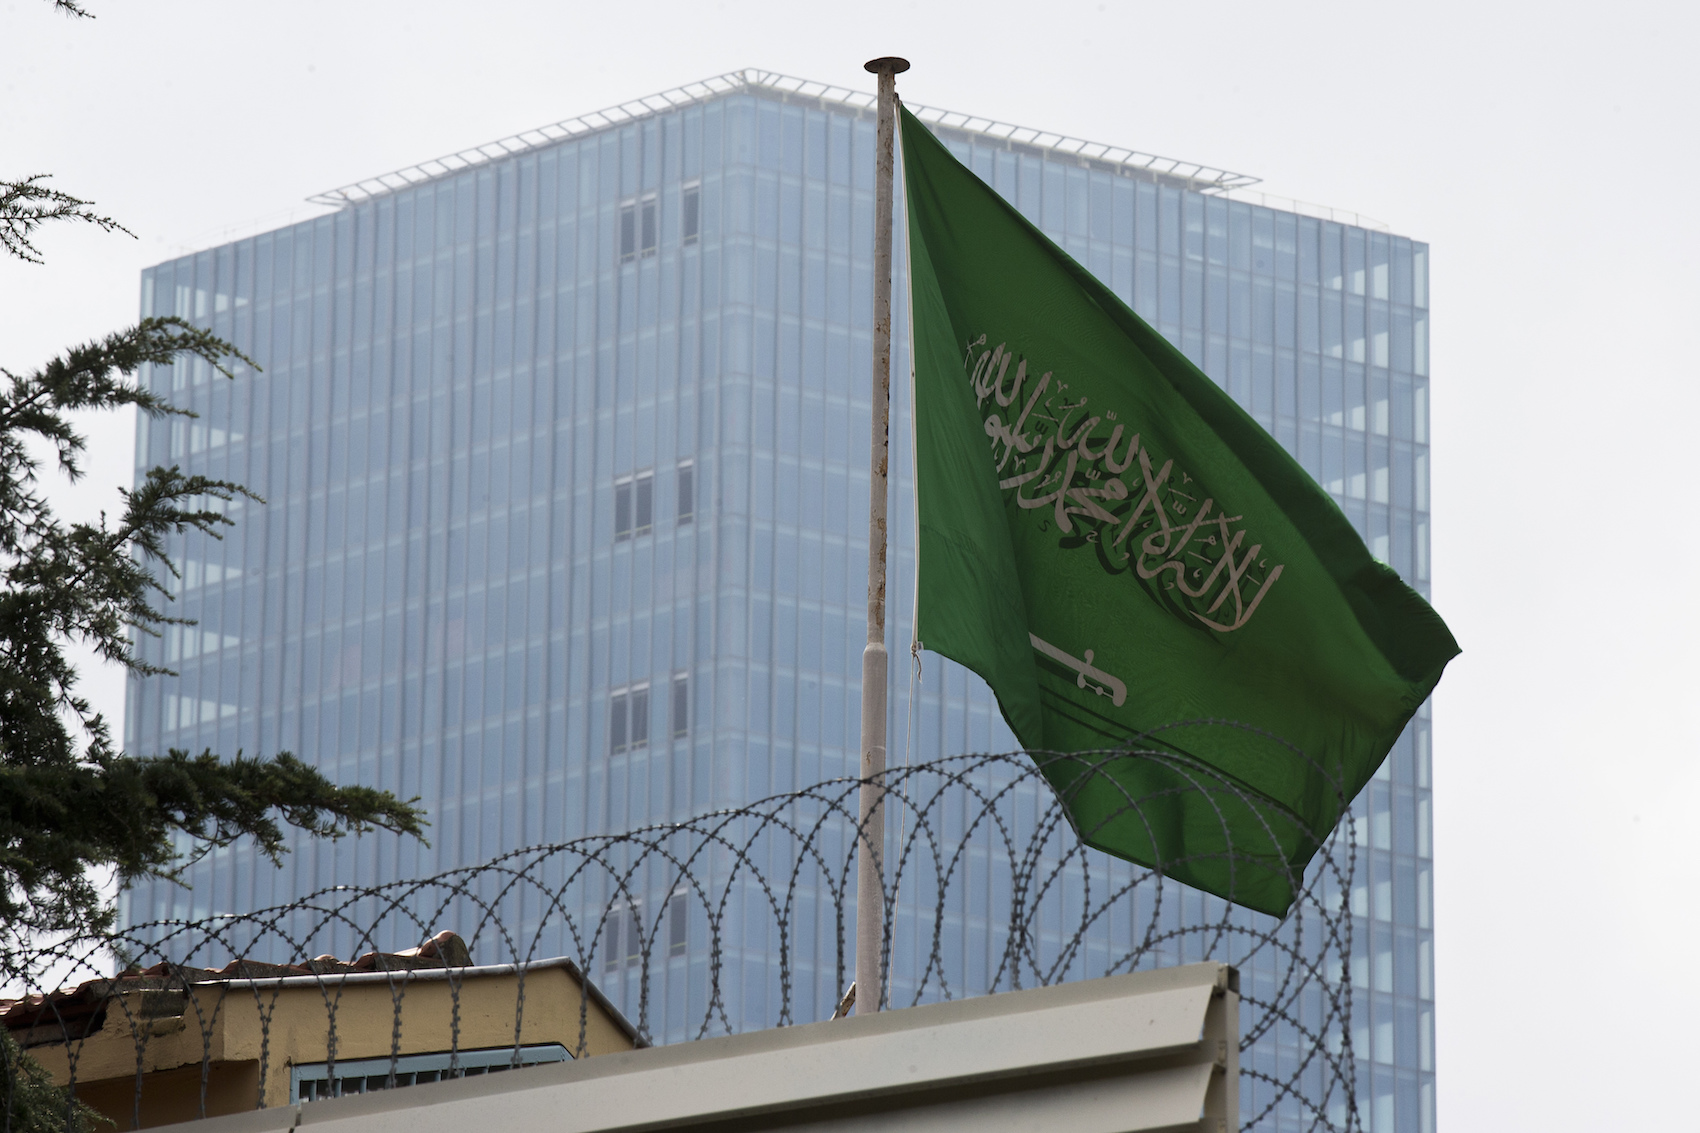 """A Saudi Arabia flag flies on the roof of Saudi Arabia's consulate in Istanbul, Friday, Oct. 12, 2018. A senior Turkish official says Turkey and Saudi Arabia will form a """"joint working group"""" to look into the disappearance of Saudi writer Jamal Khashoggi. (AP Photo/Petros Giannakouris)"""